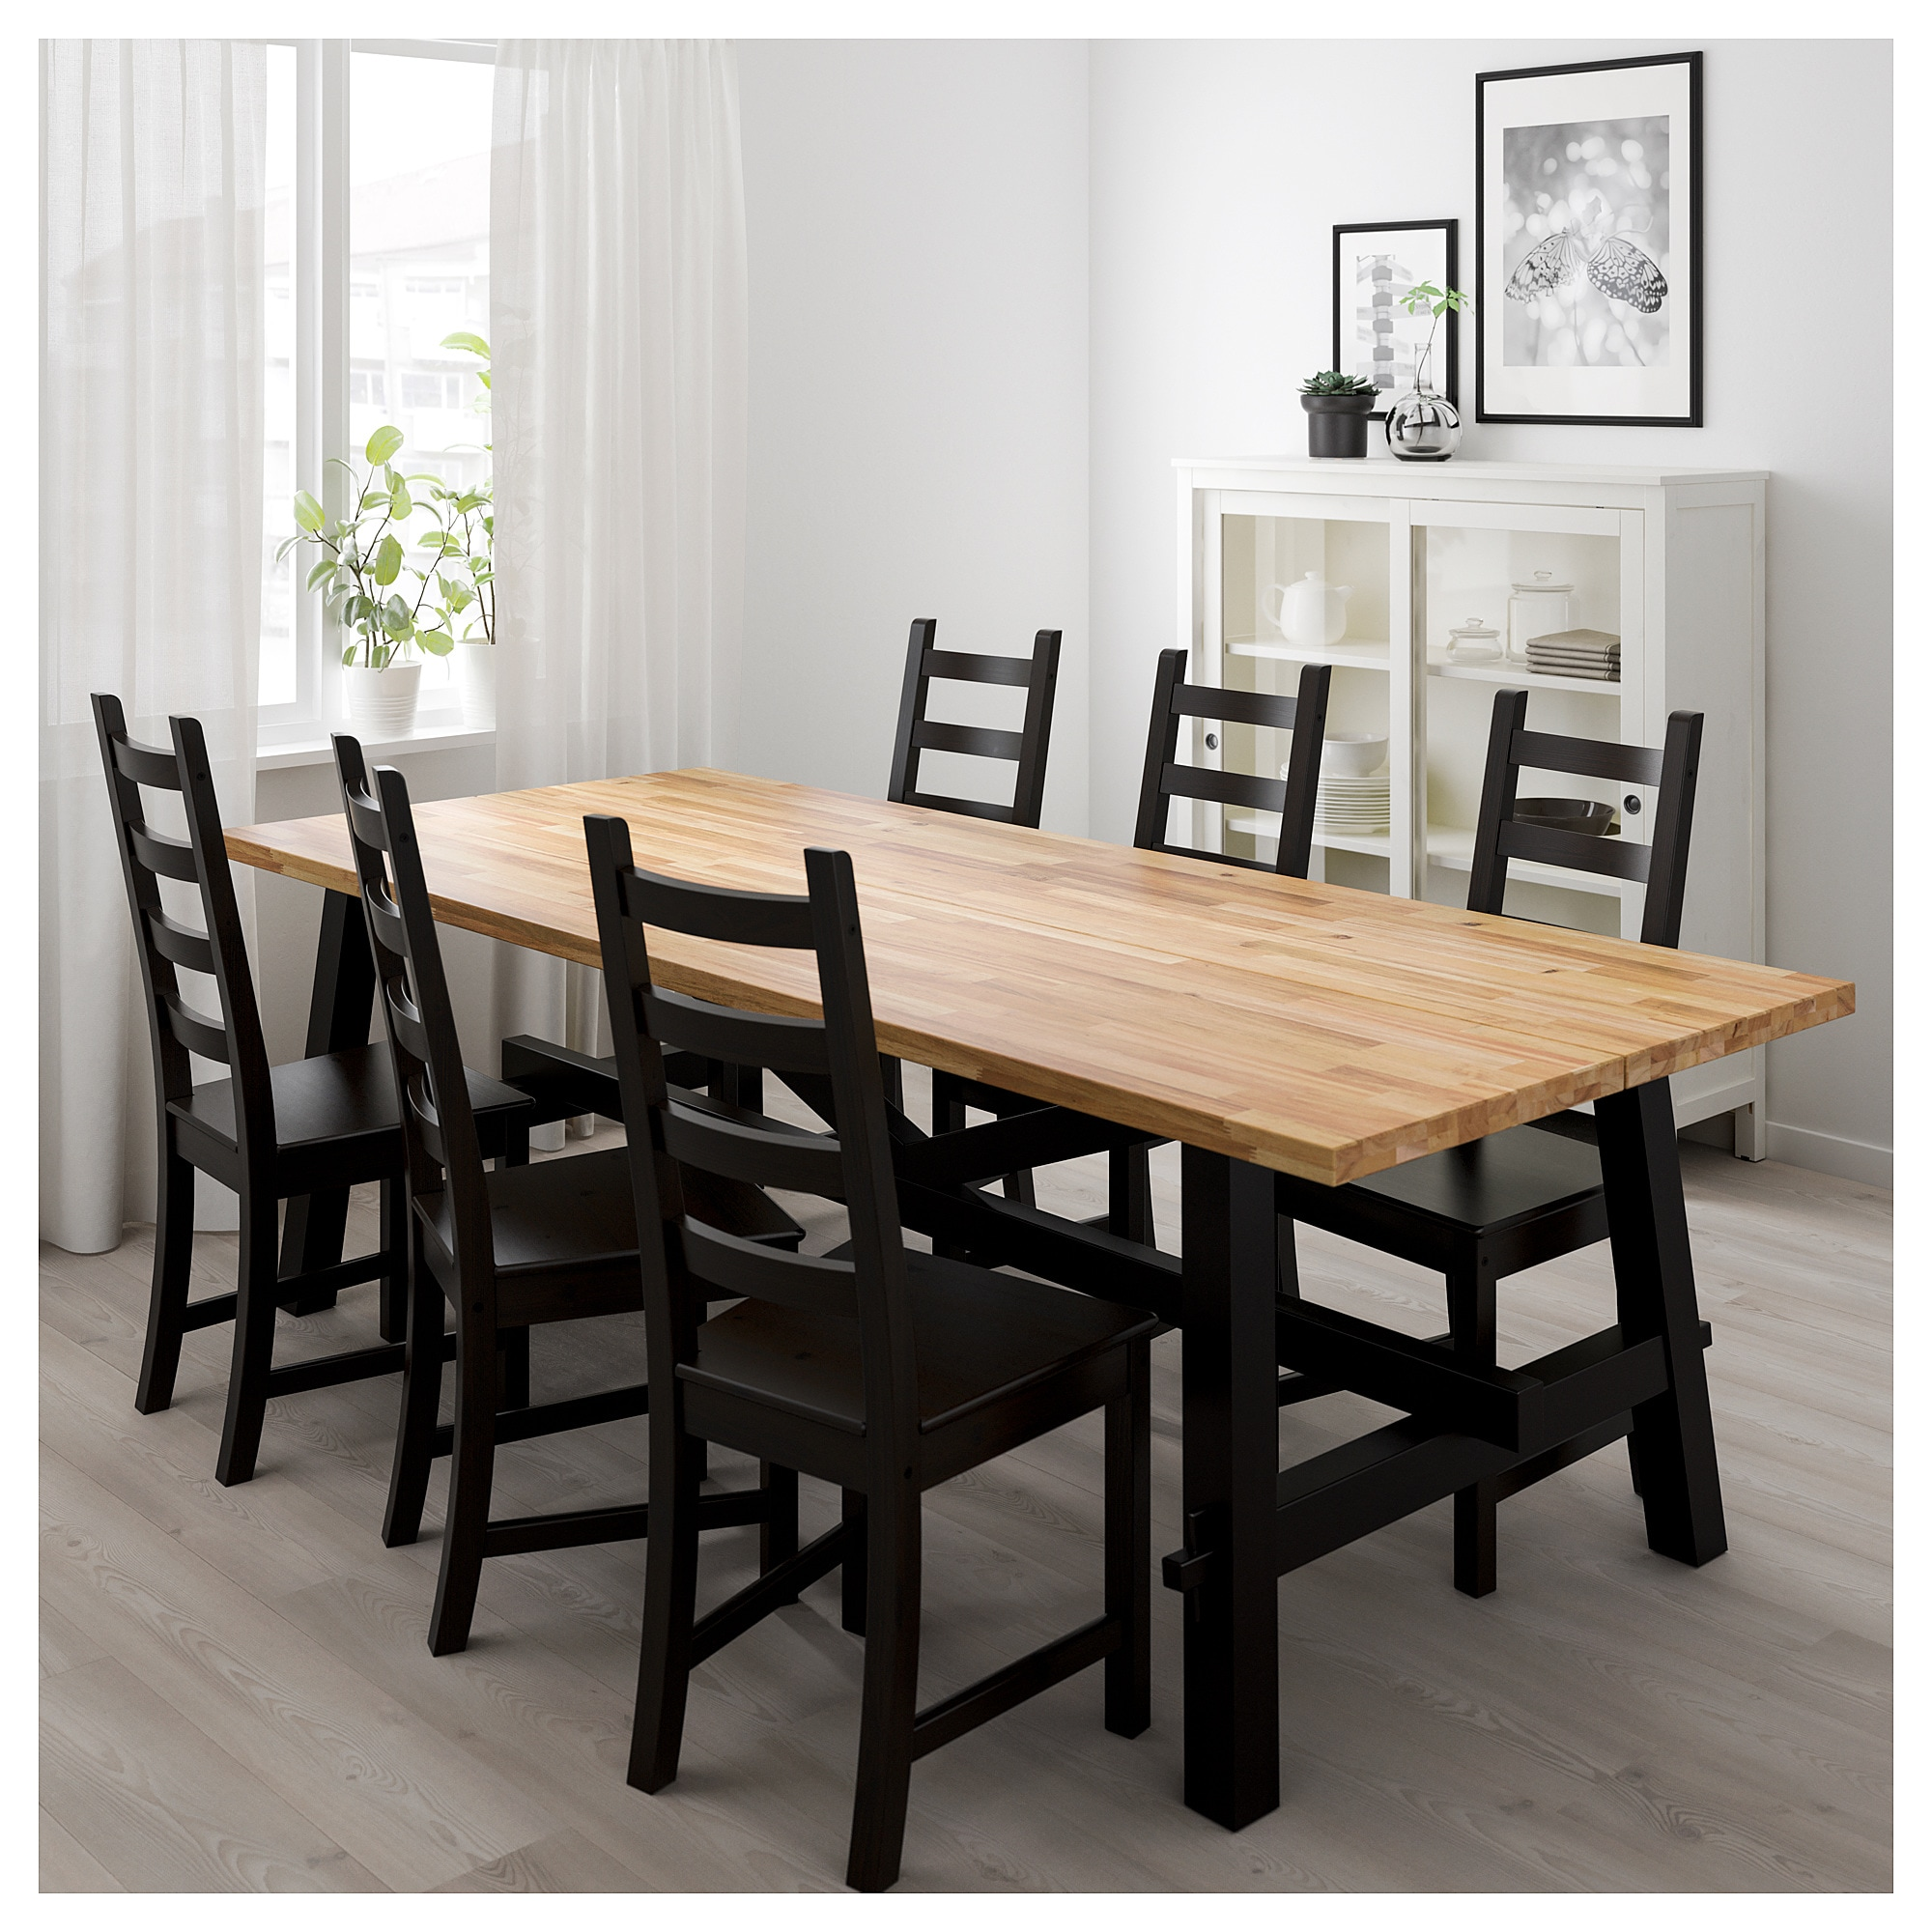 Ikea Dining Table Skogsta Dining Table Acacia